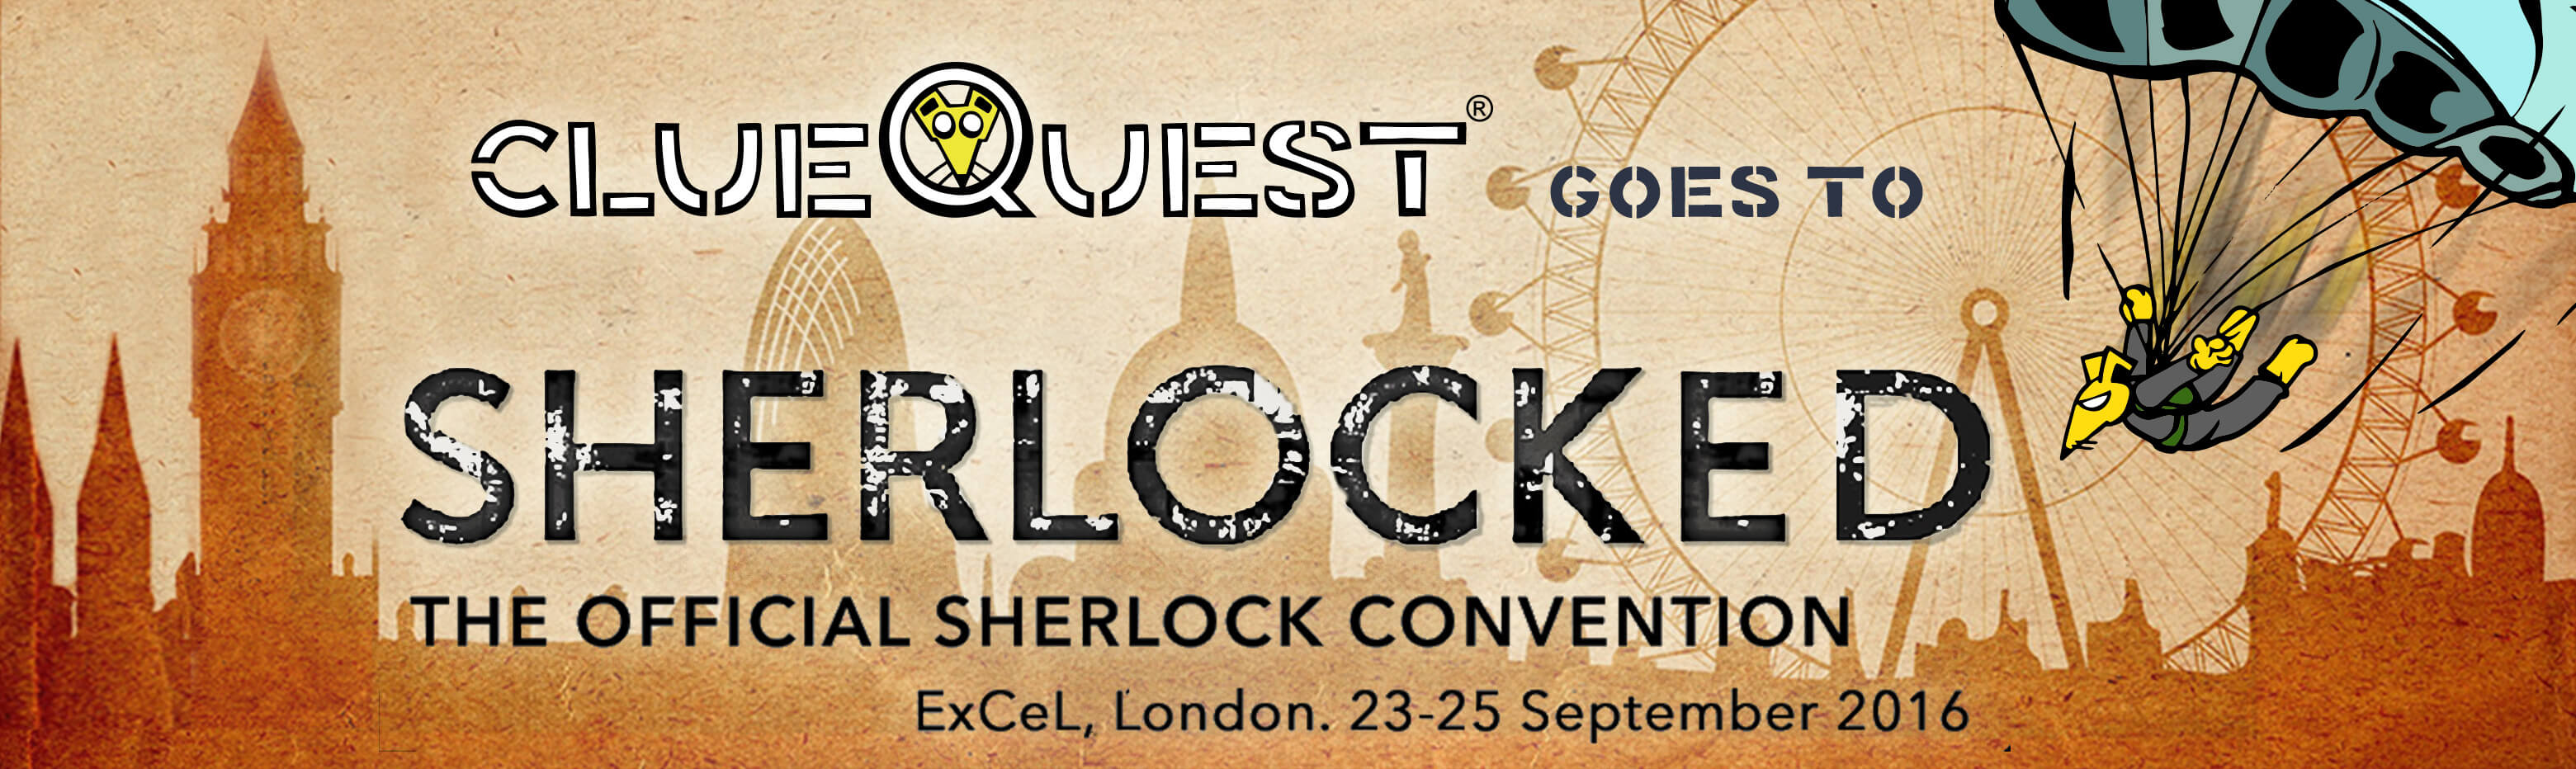 clueQuest at The official Sherlock convention - ExCel London 23-25 September